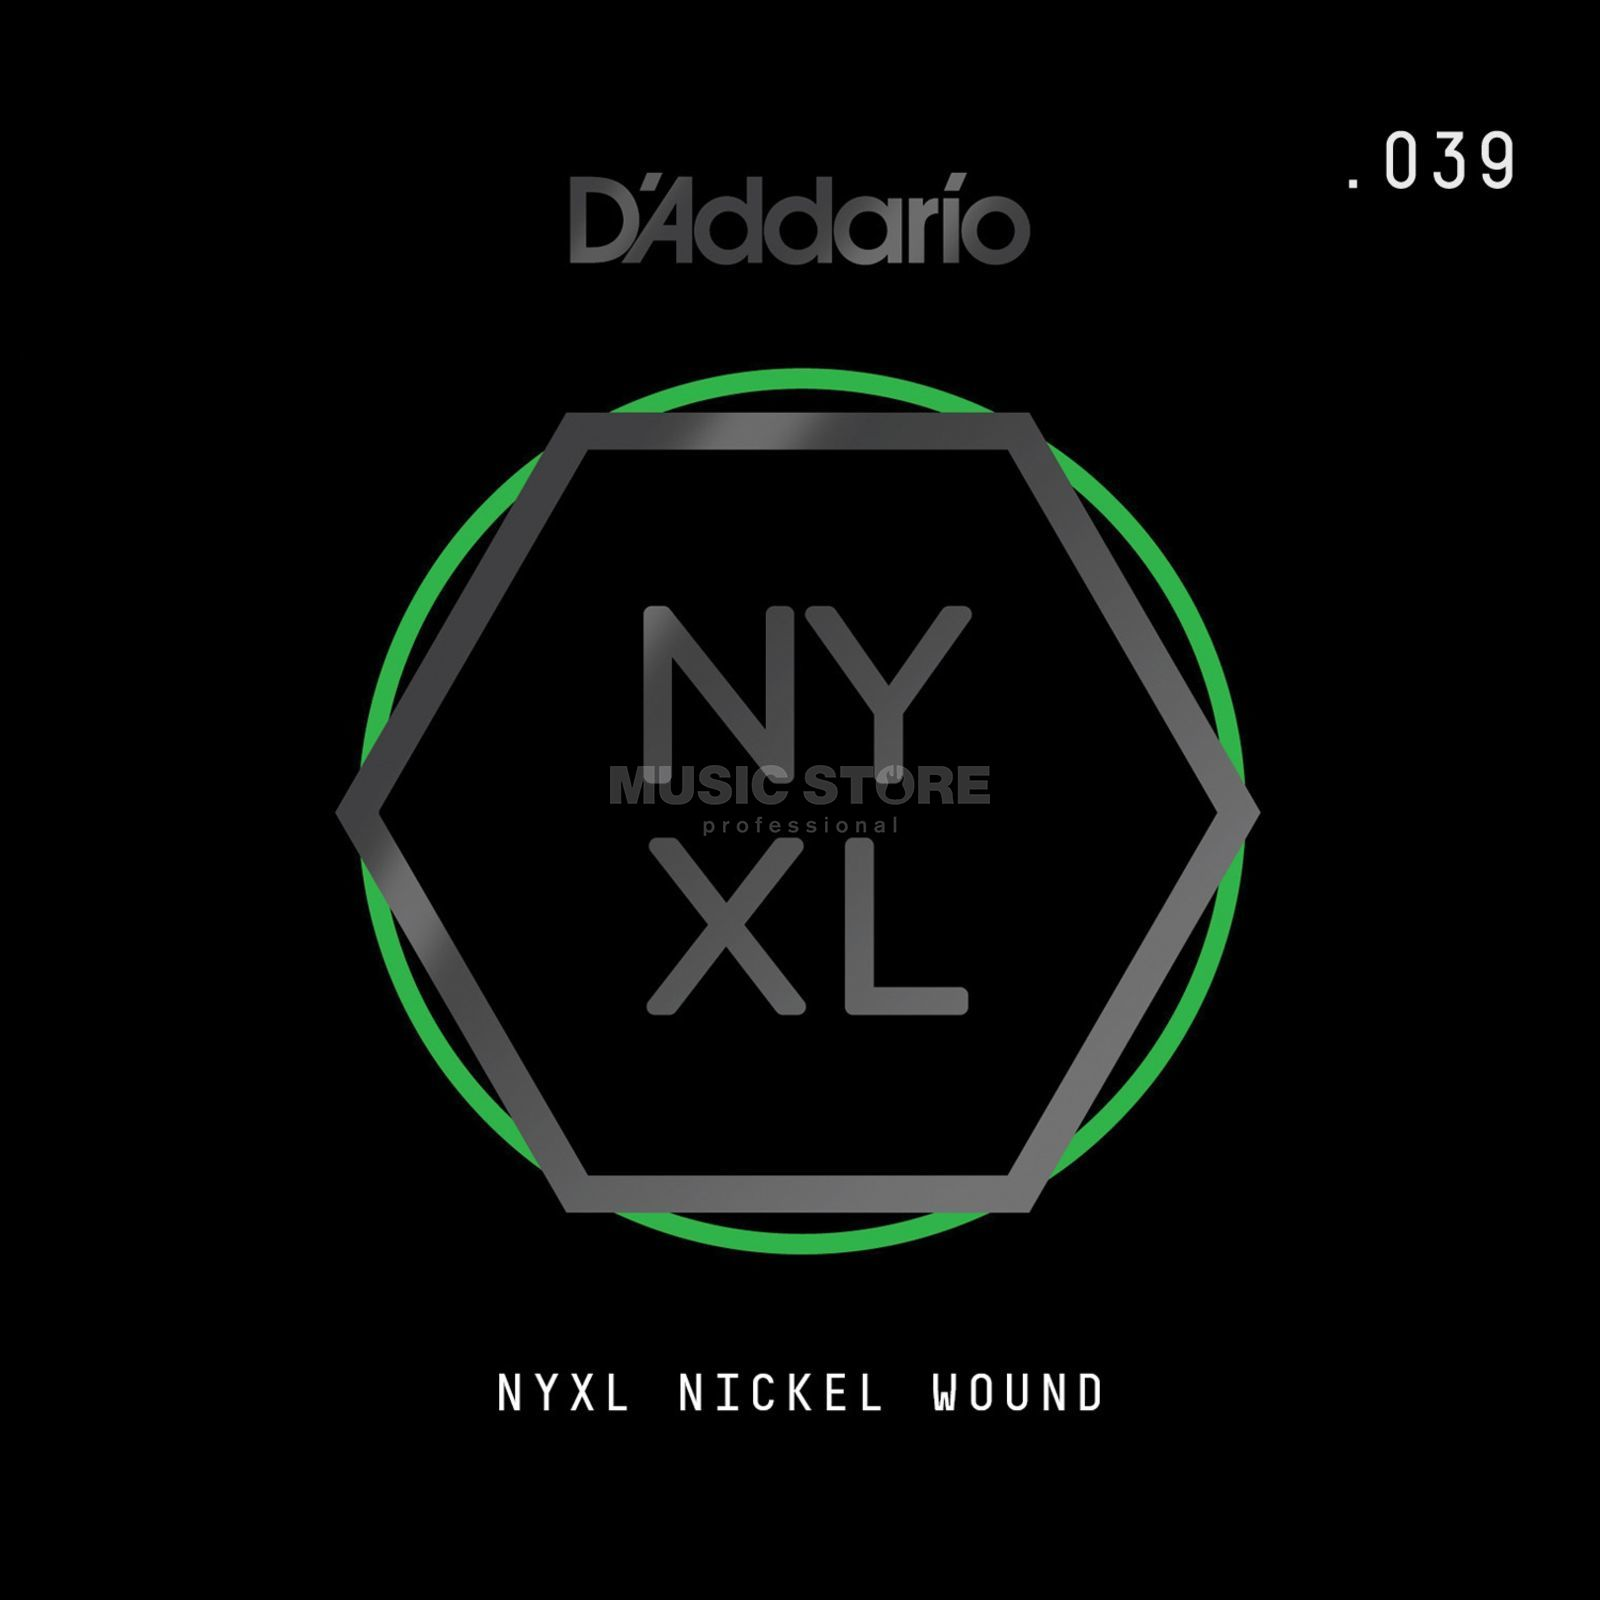 D'Addario NYNW039 Single String Nickel Wound Product Image